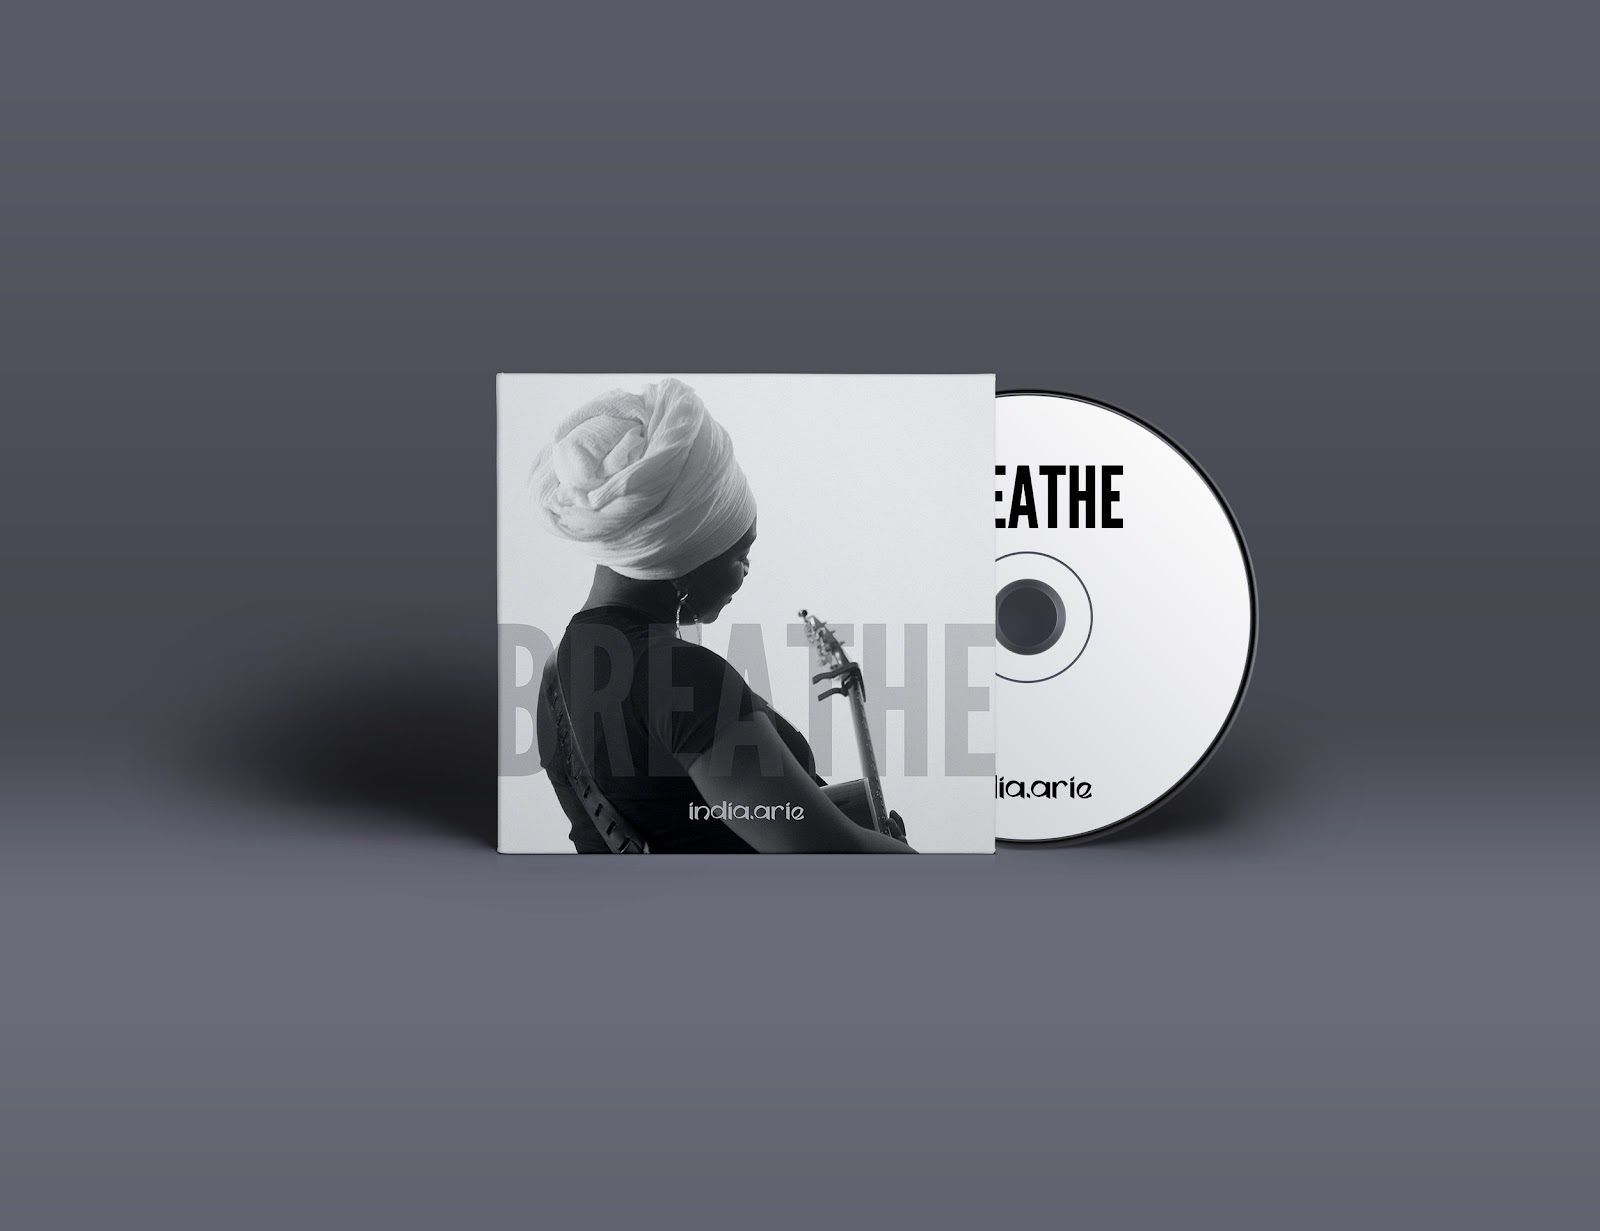 Cover artwork for India Arie's single Breathe, designed by Denise Francis.